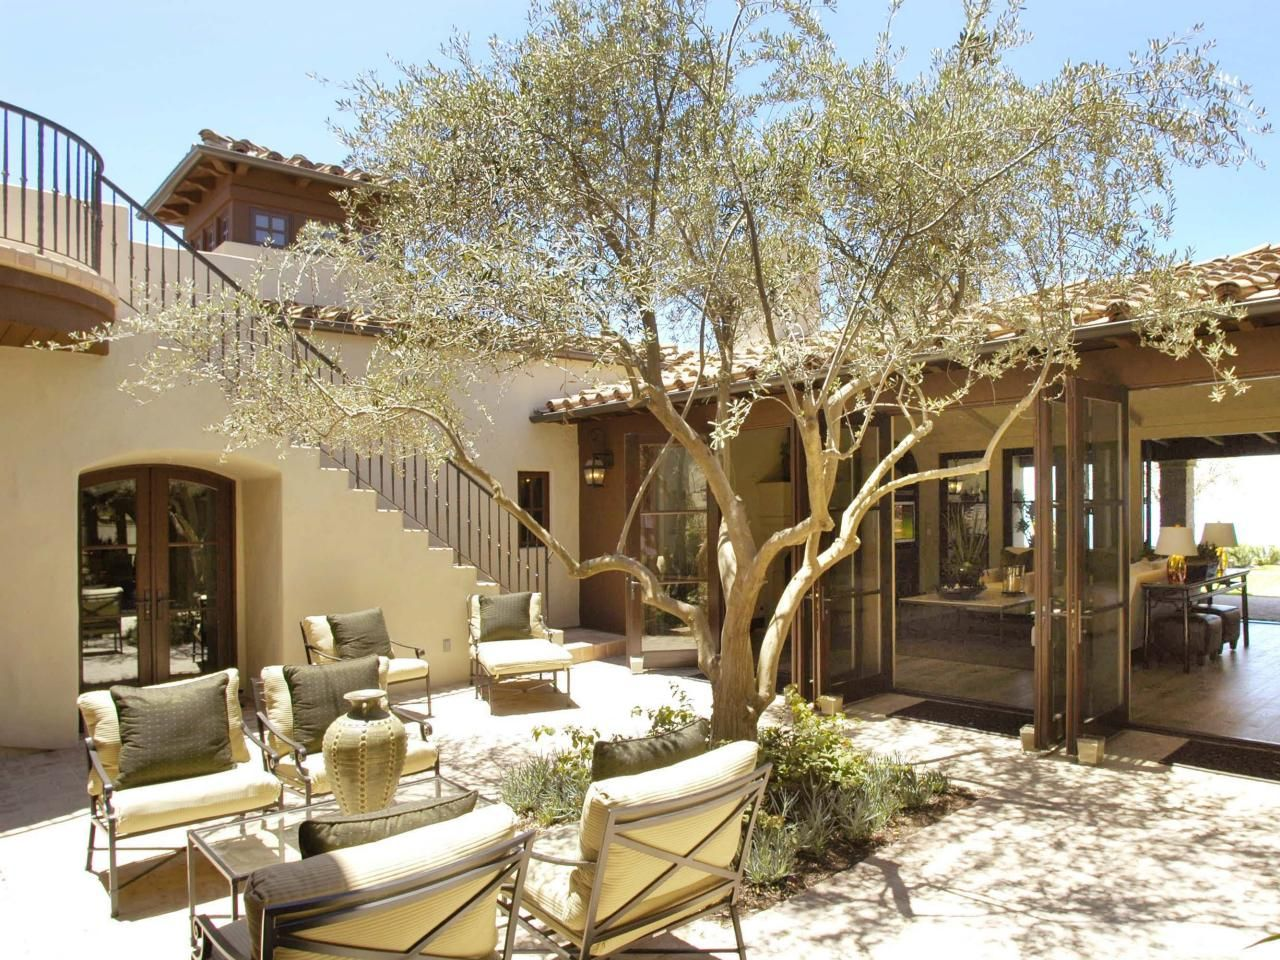 1000+ ideas about Mission Style Homes on Pinterest Spanish Style ... - ^